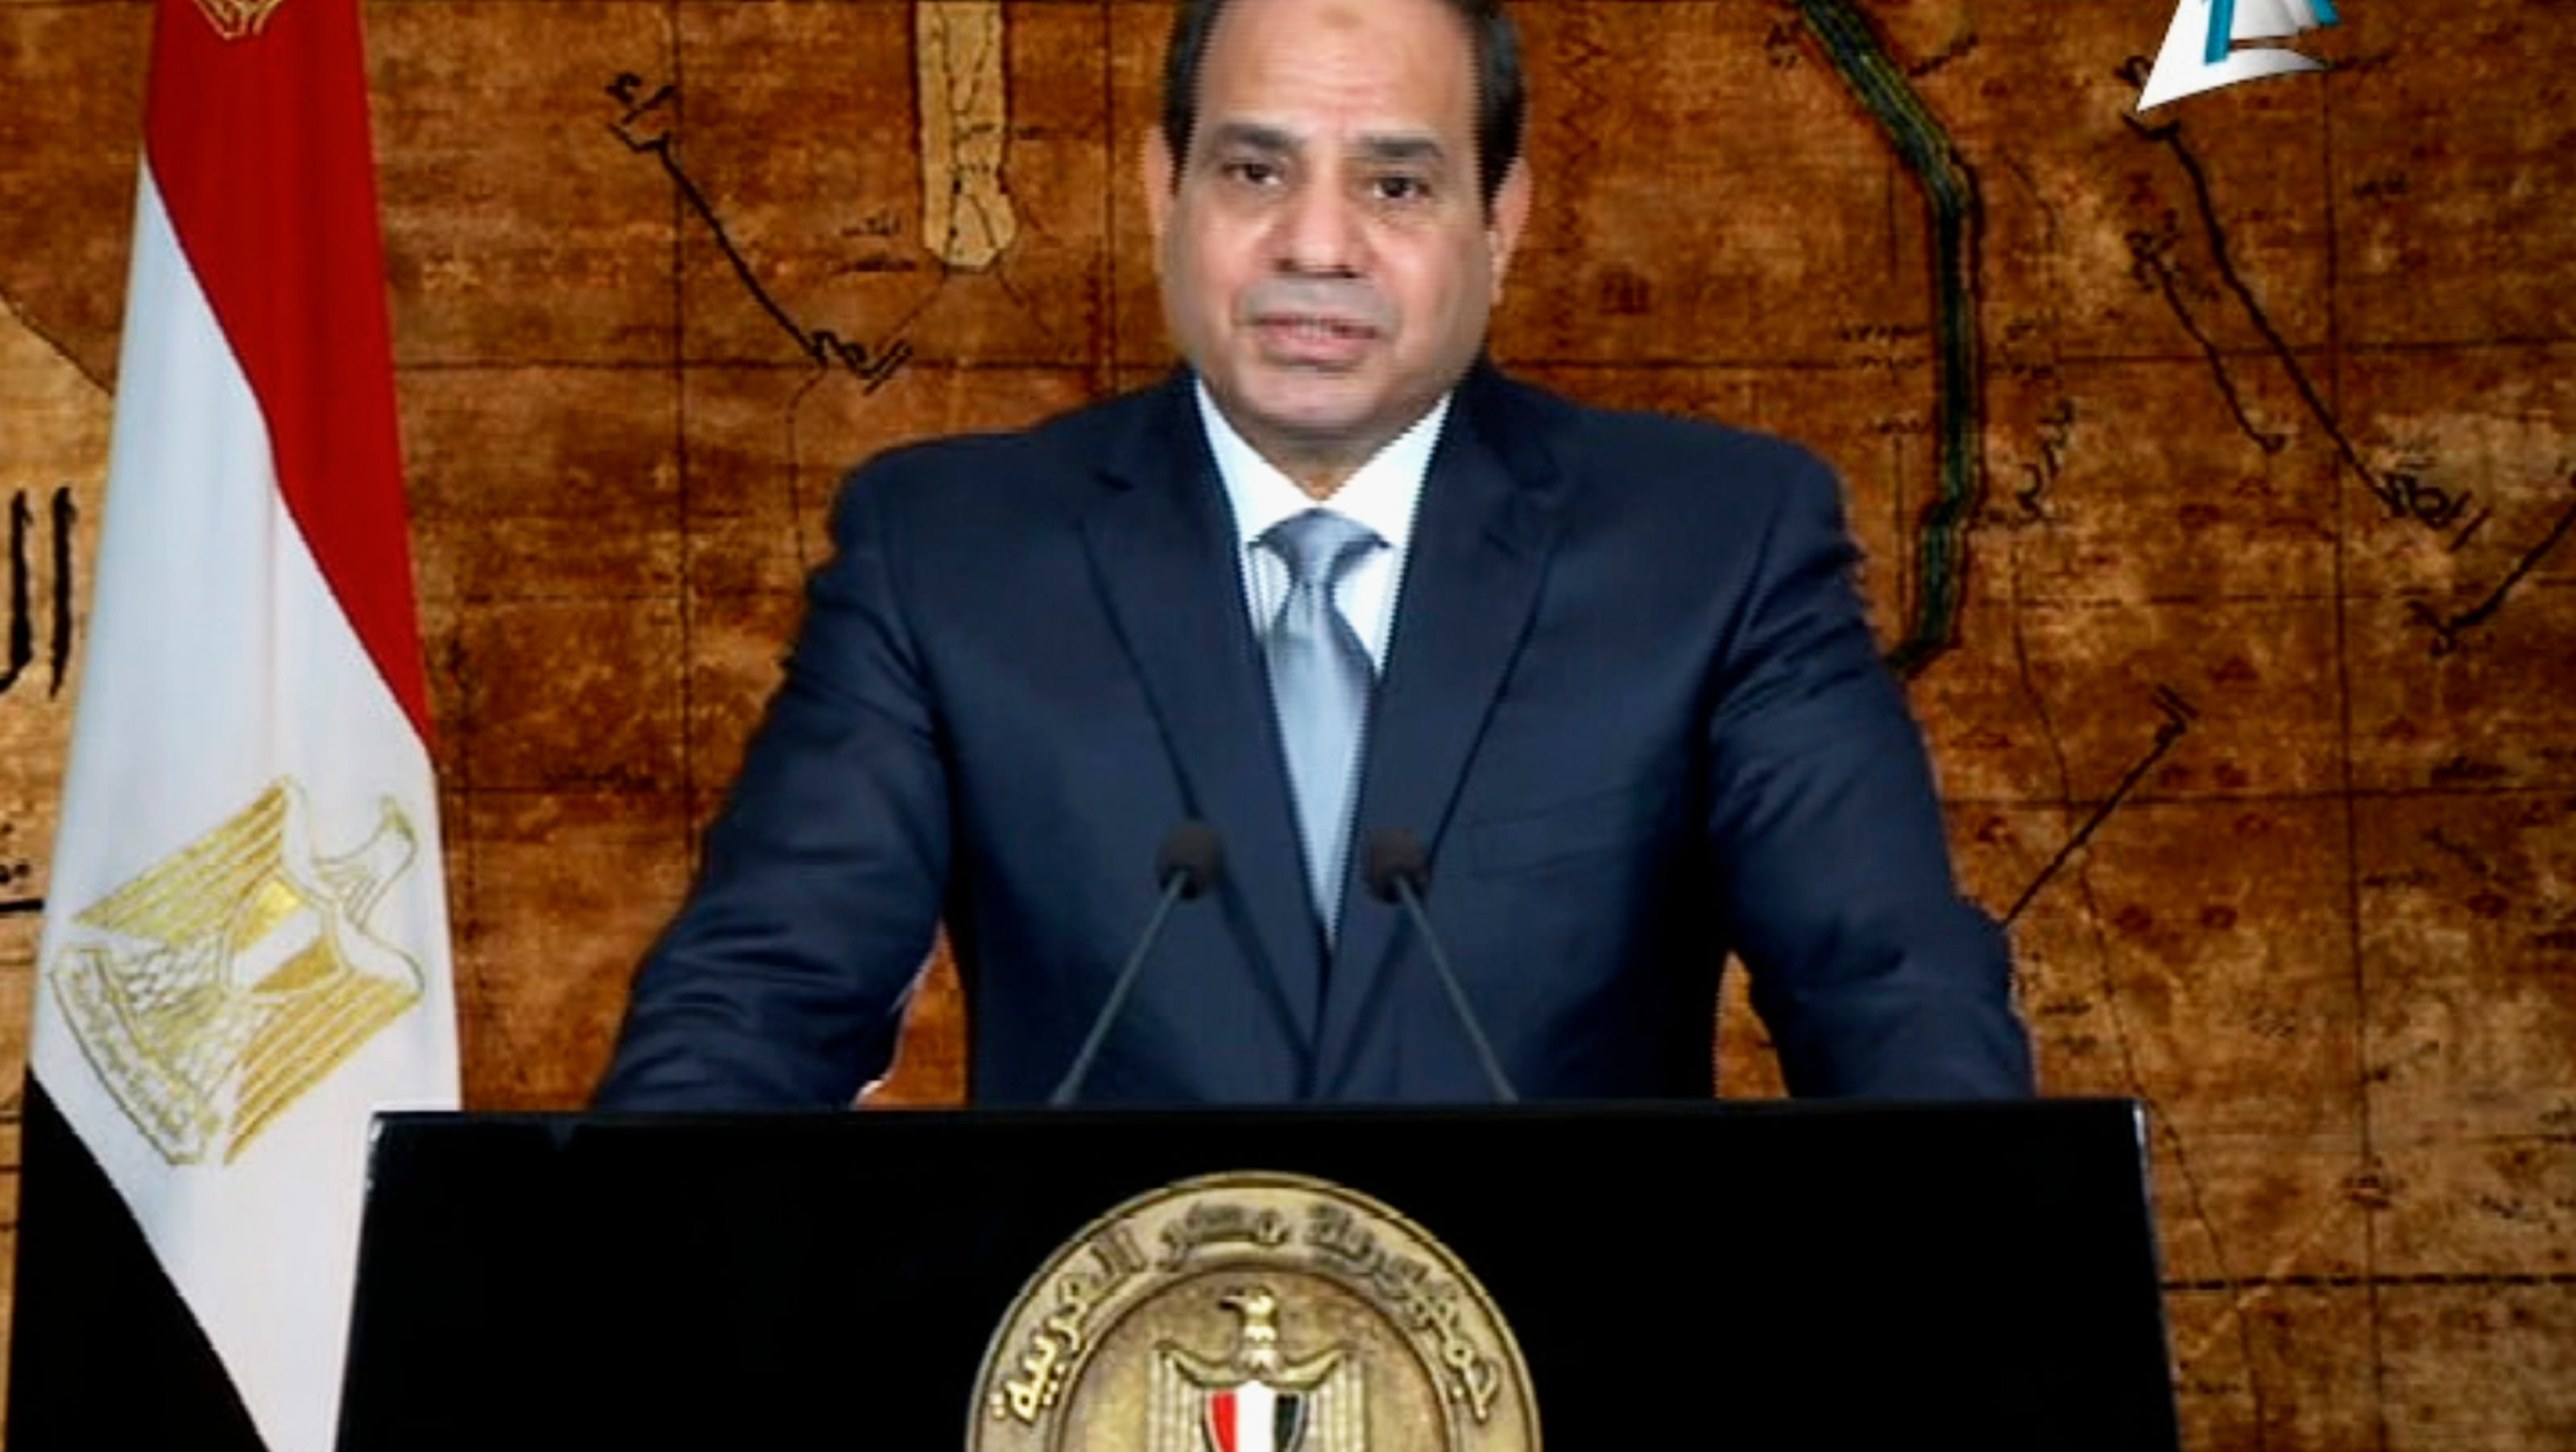 Egypt president asks for patience over power cuts